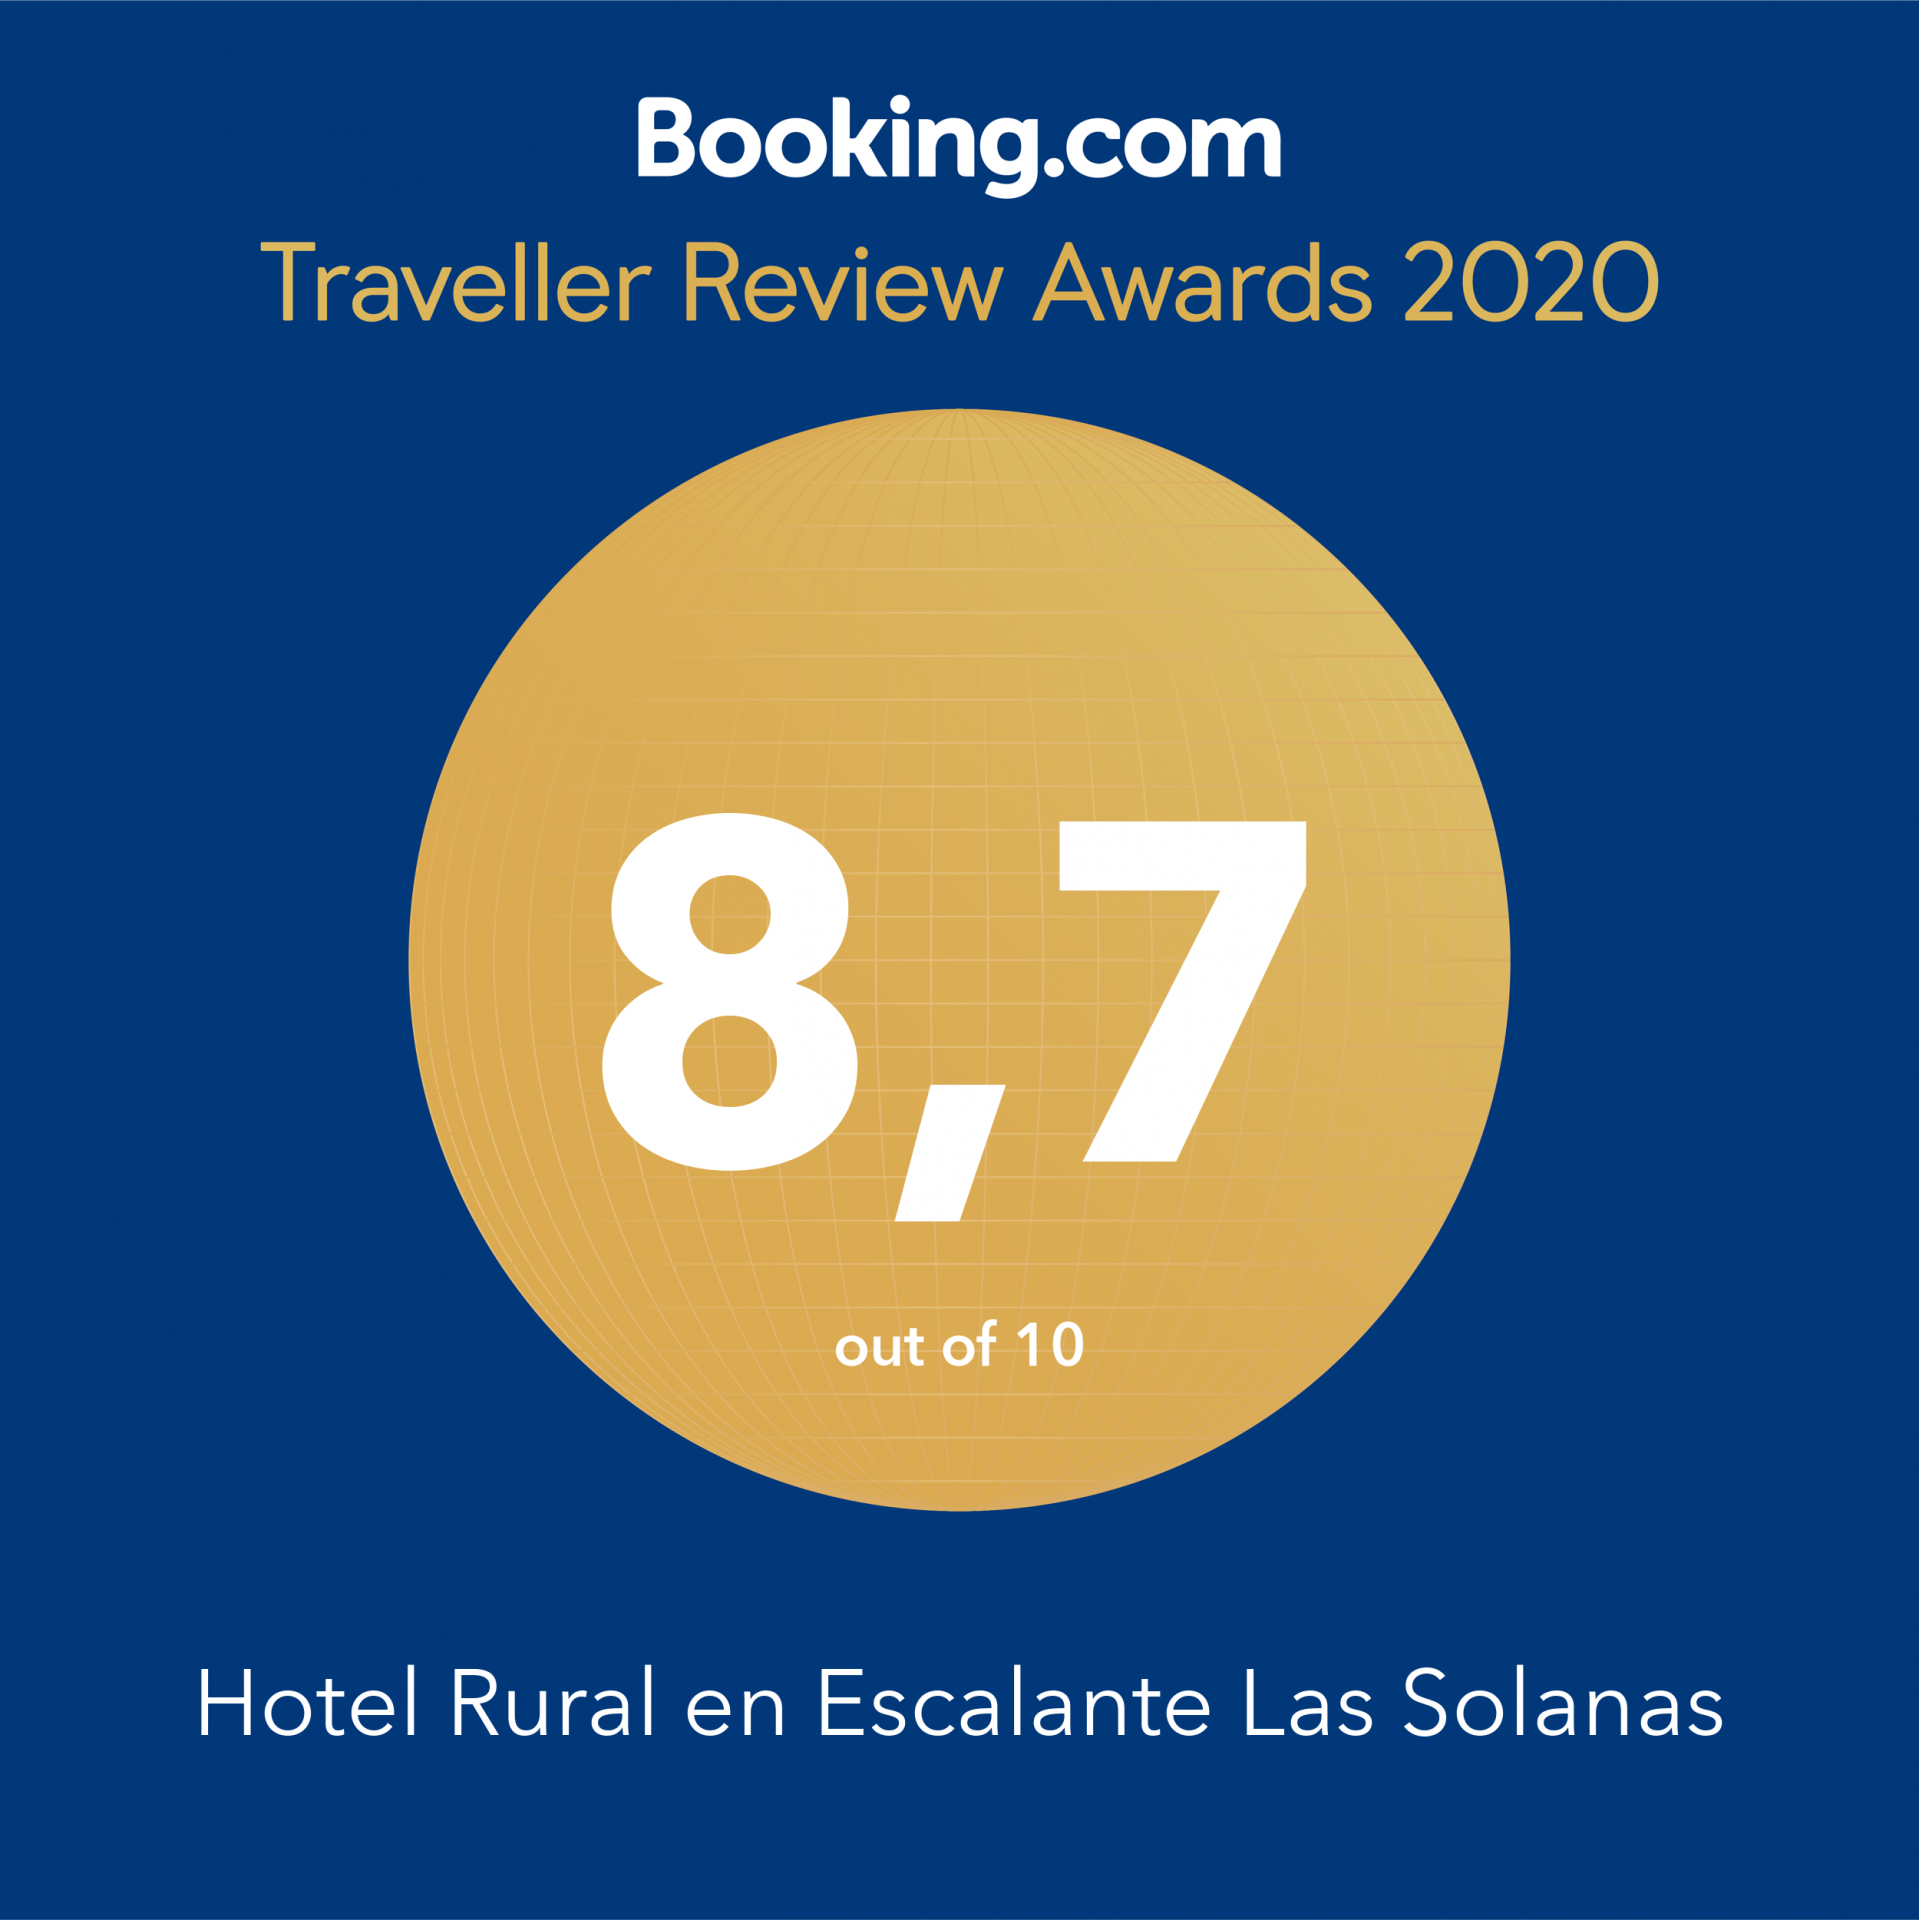 Hoteles rurales Cantabria award Booking